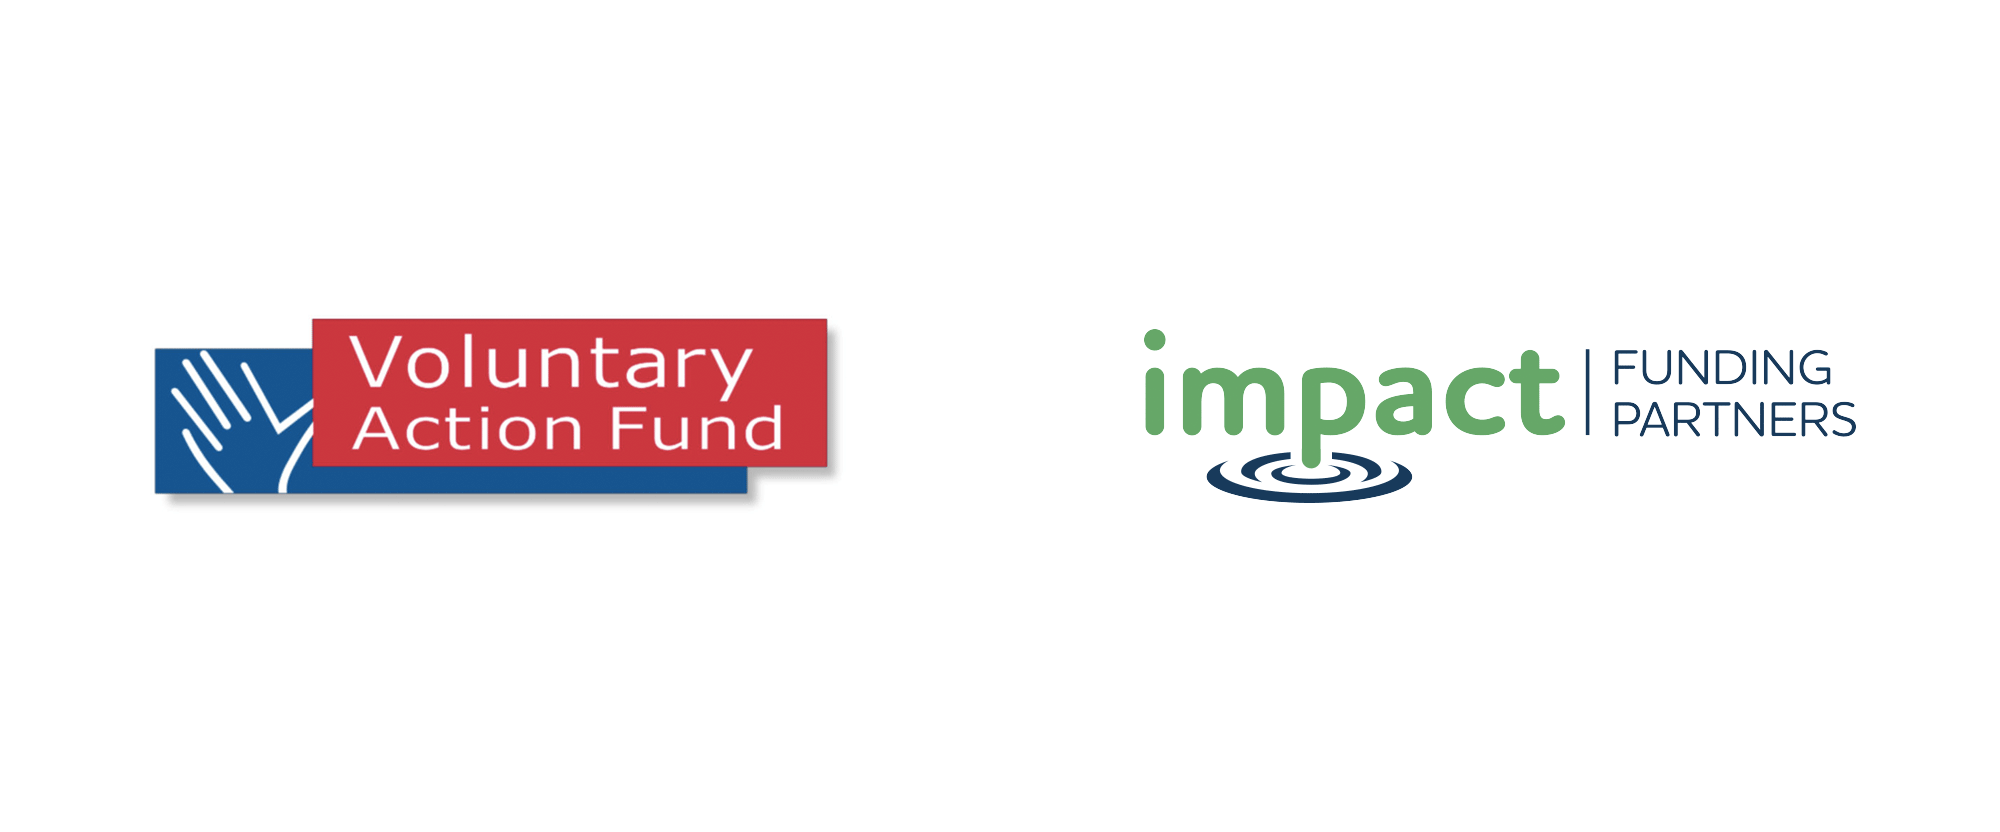 New Name and Logo for Impact Funding Partners